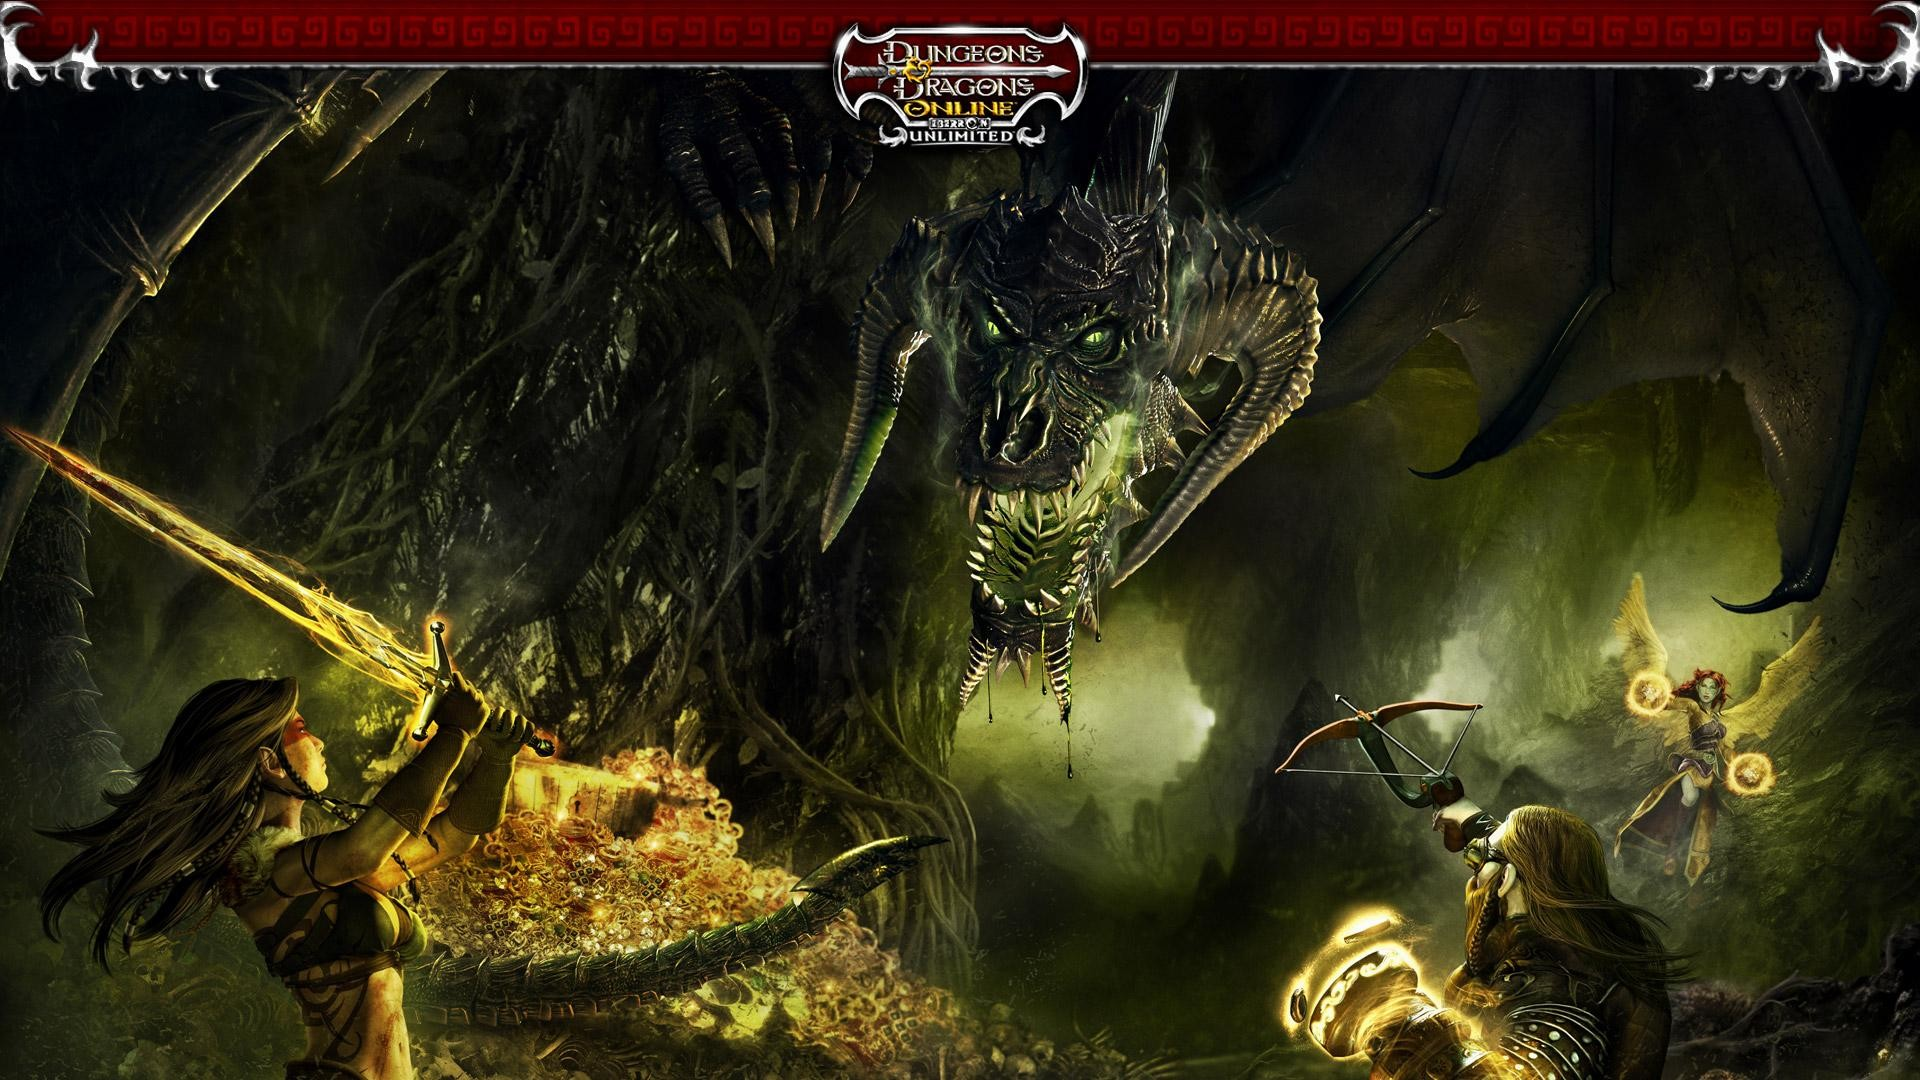 wallpaper.wiki-Free-Art-Images-Dungeons-And-Dragons-